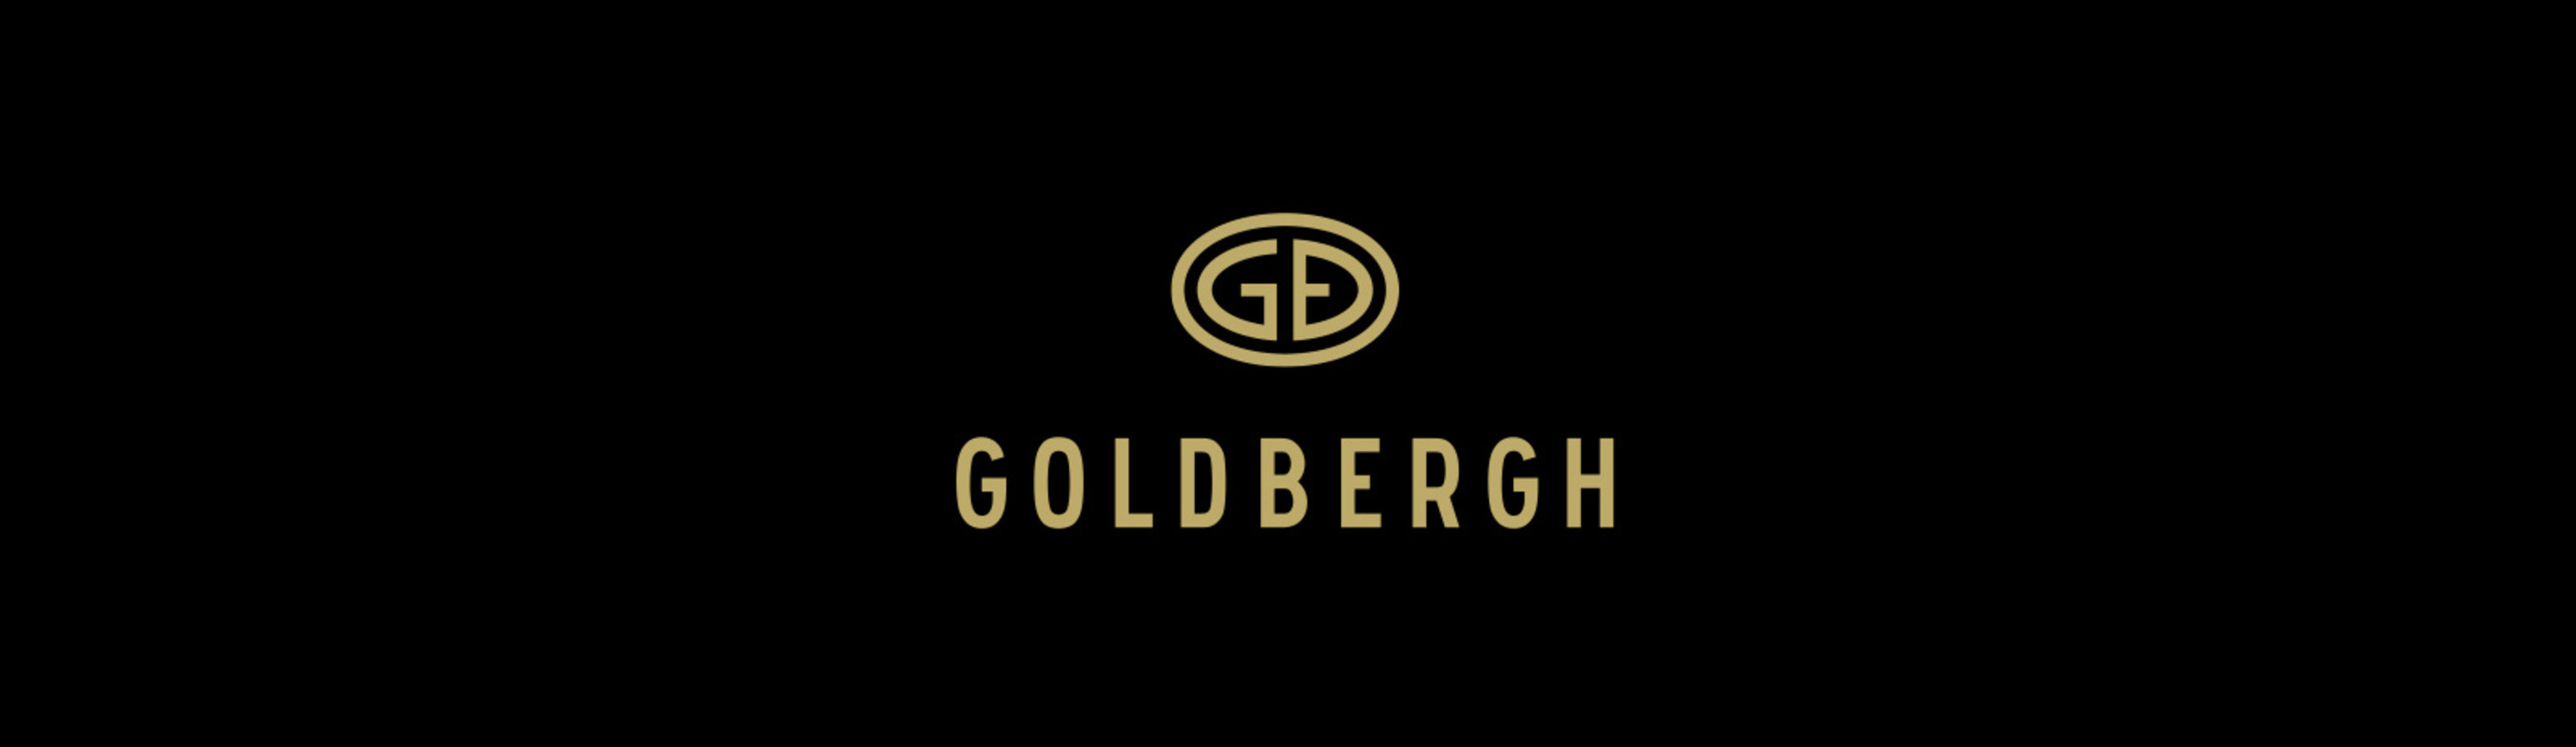 Blog: Goldbergh